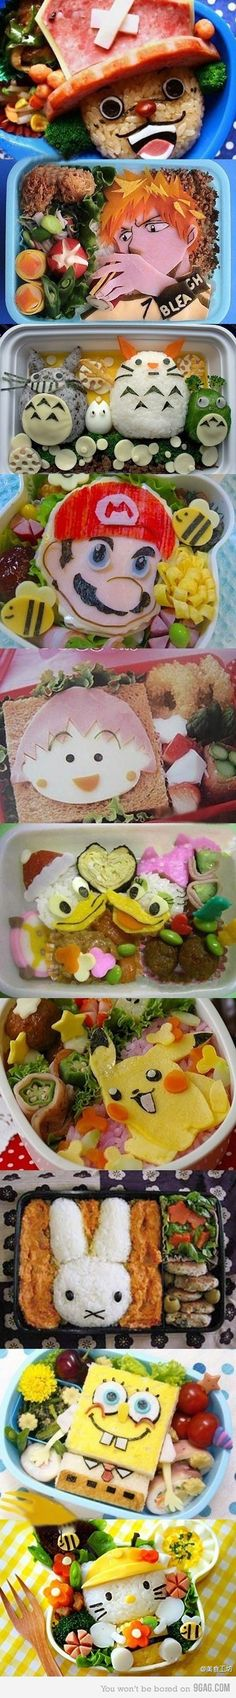 playing with your food  http://exgirlfriendquotes.org/